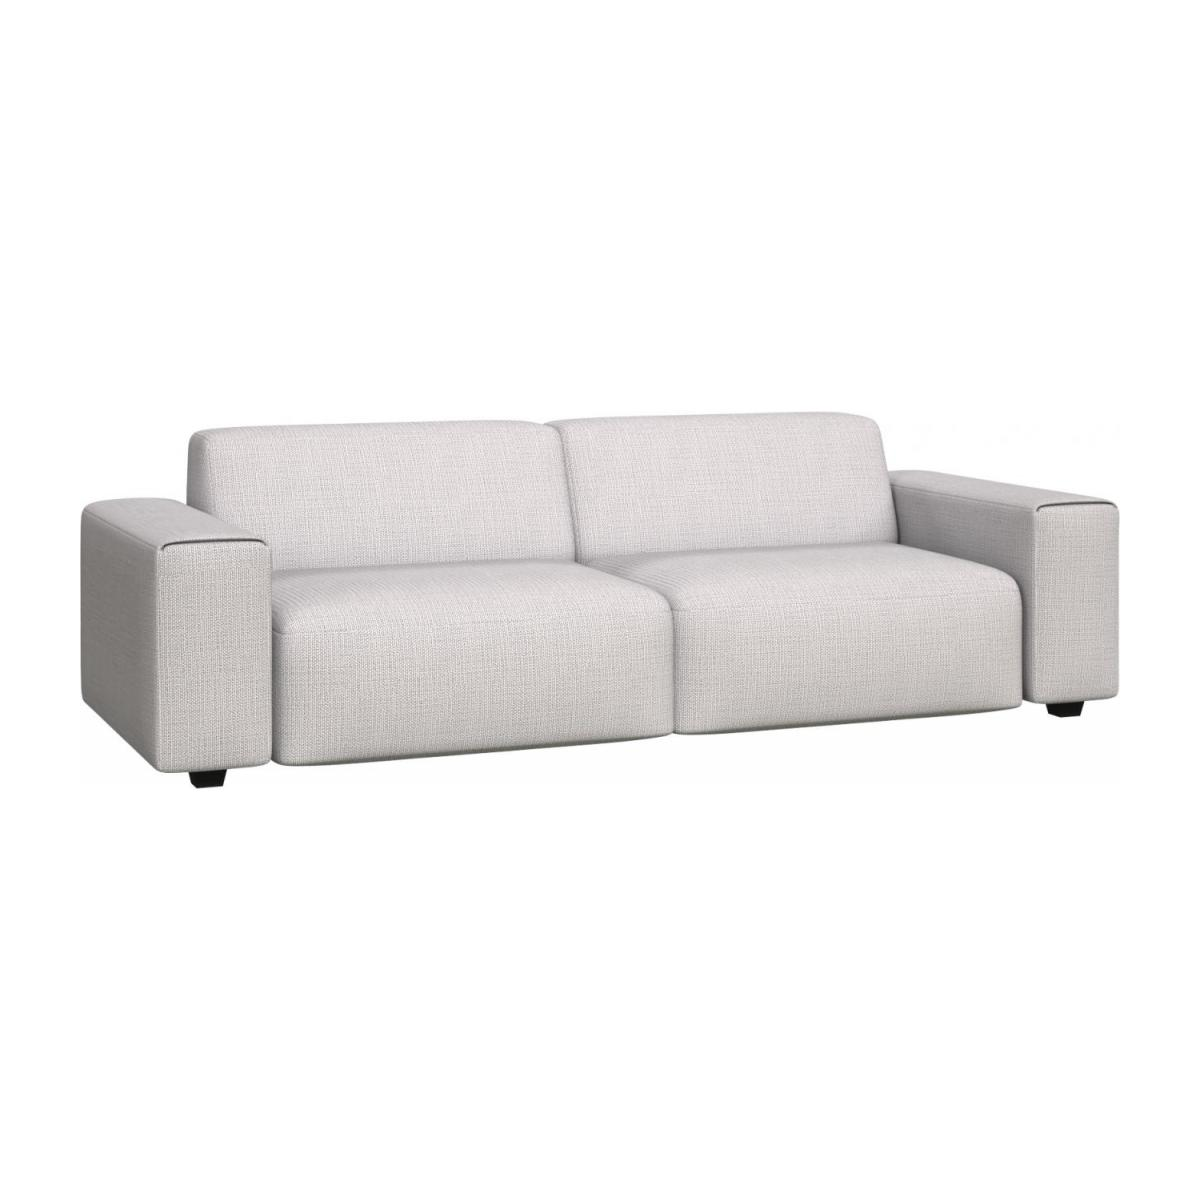 4 seater sofa in Fasoli fabric, grey sky n°1